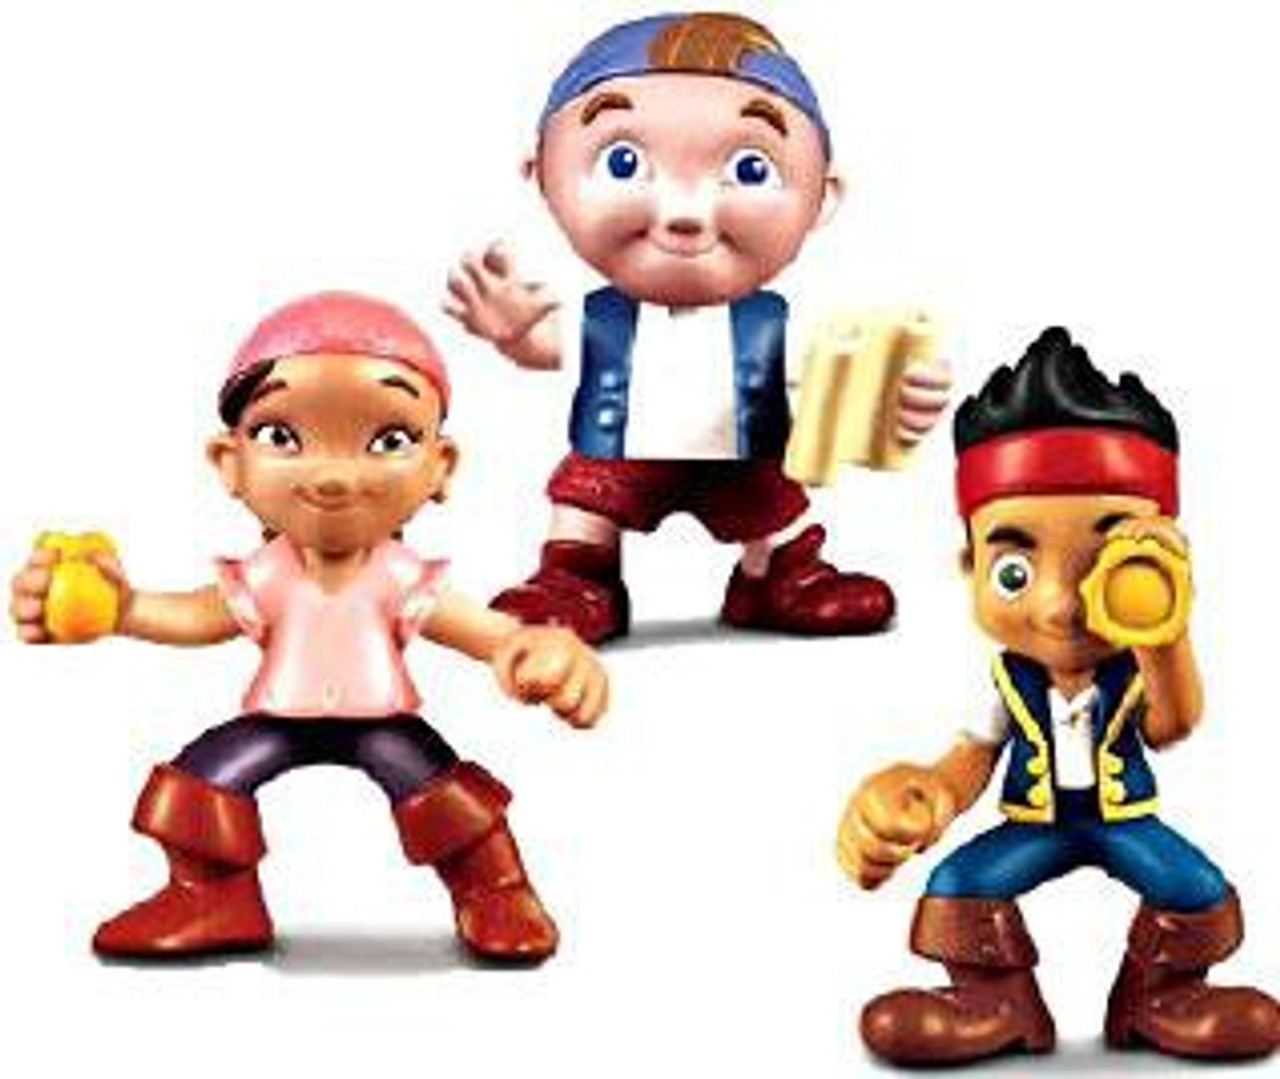 Fisher Price Disney Jake and the Never Land Pirates Jake, Izzy & Cubby Figure 3-Pack